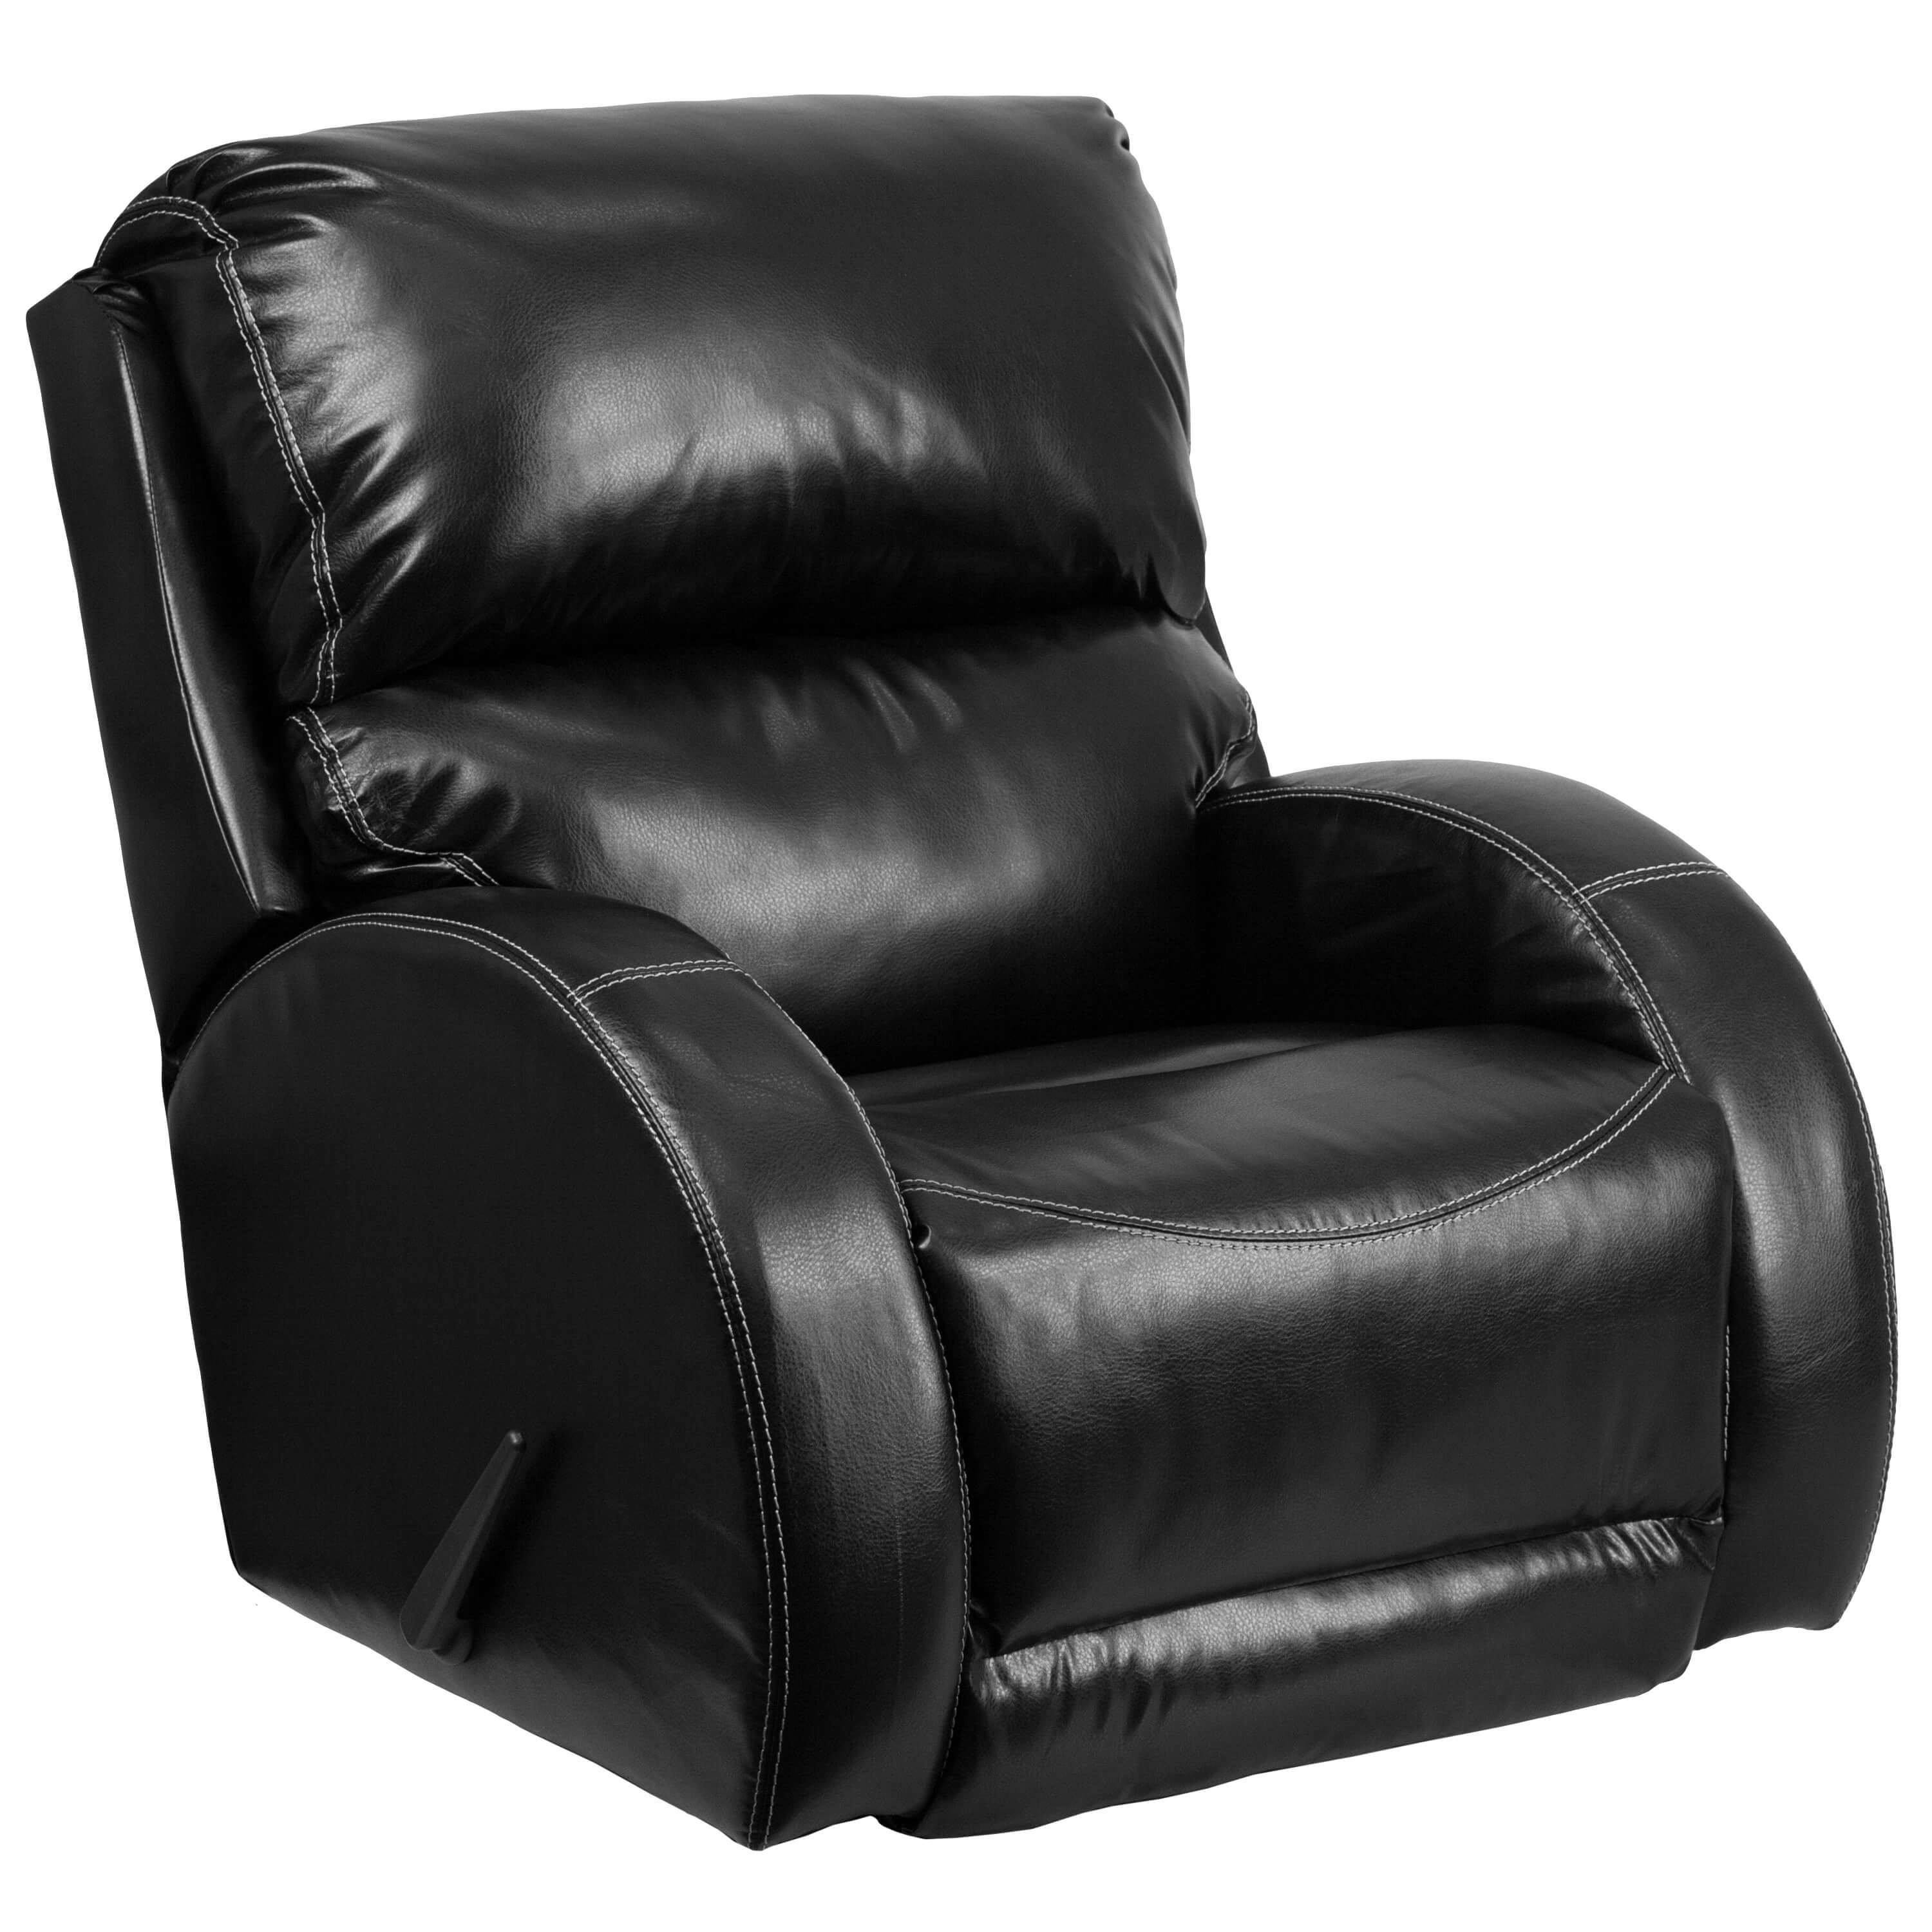 Nicoletti Leather Rocking Recliner